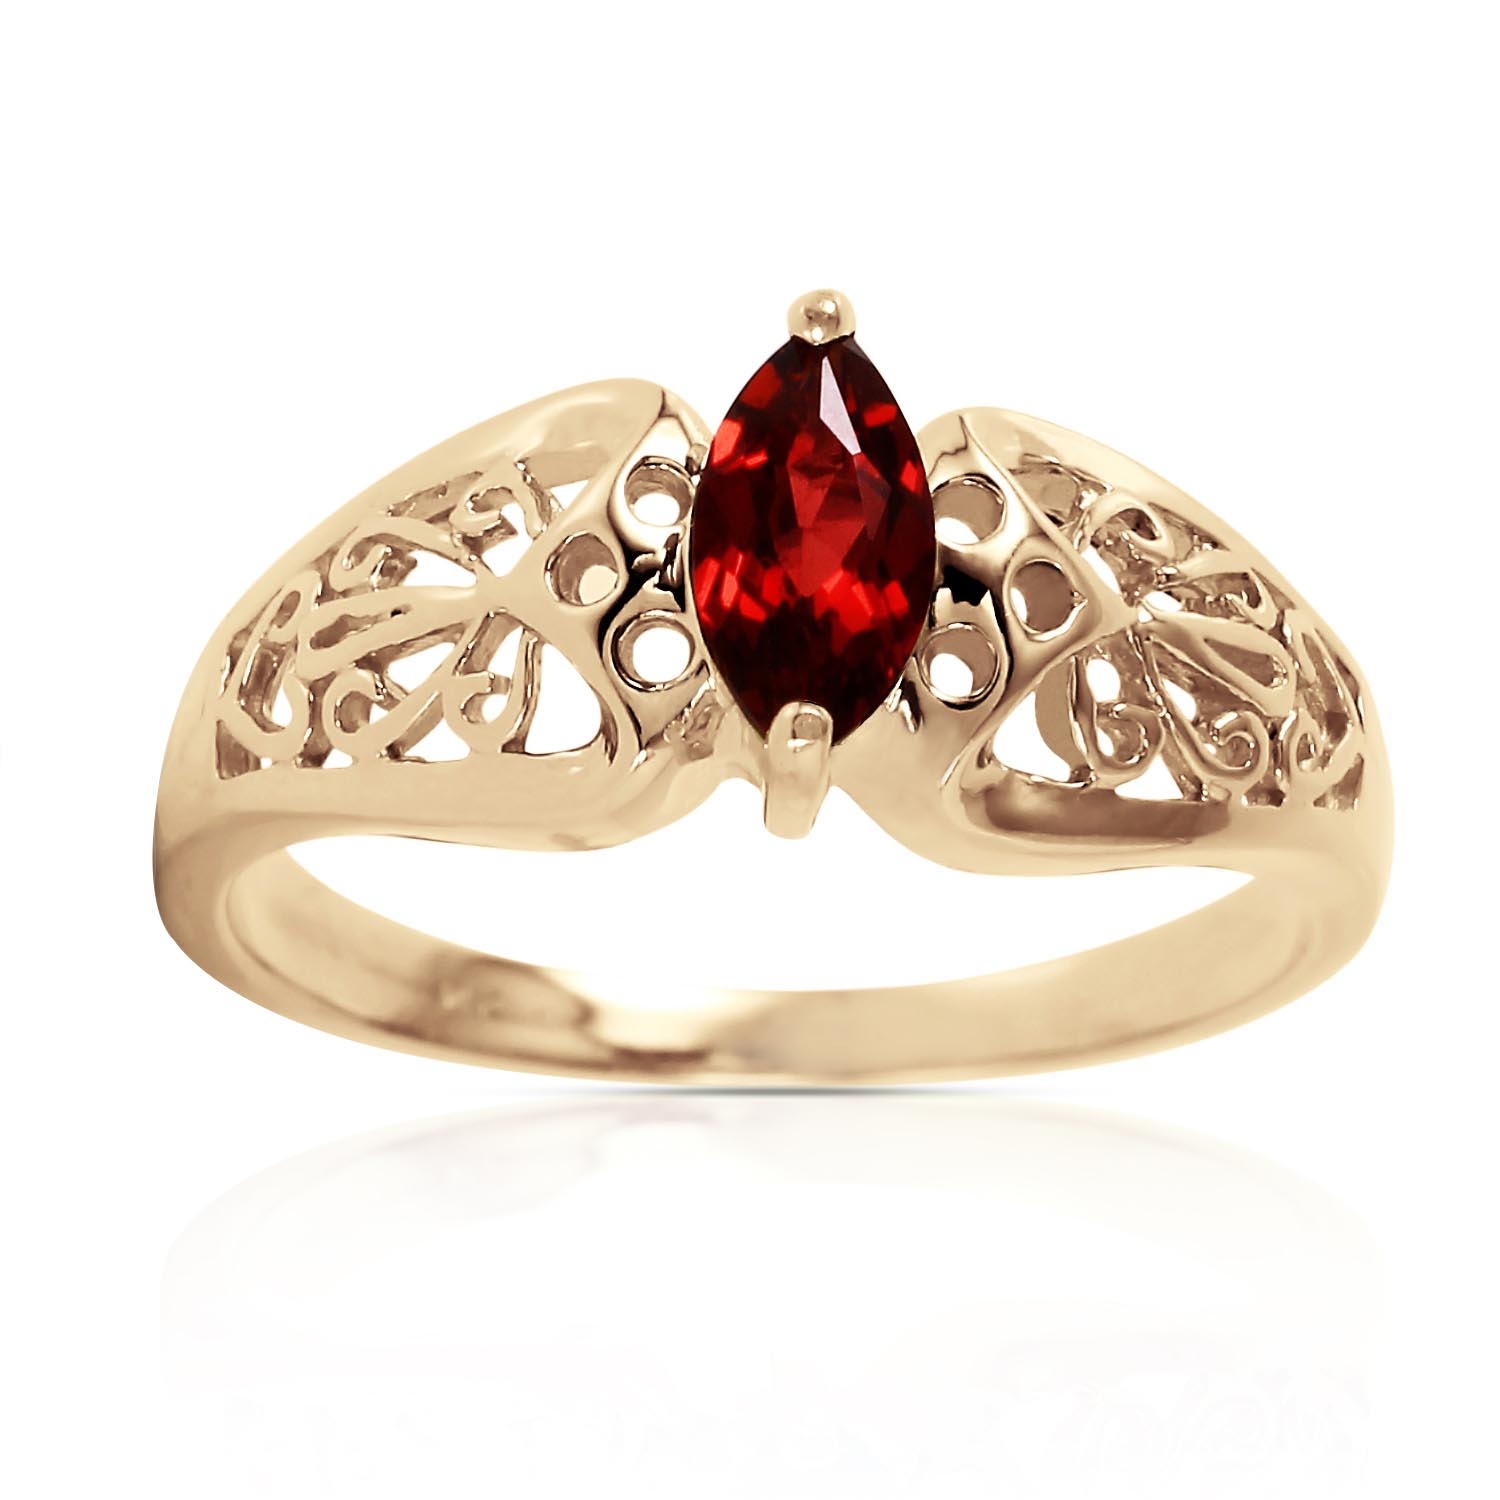 Marquise Cut Garnet Filigree Ring 0.2ct in 9ct Gold